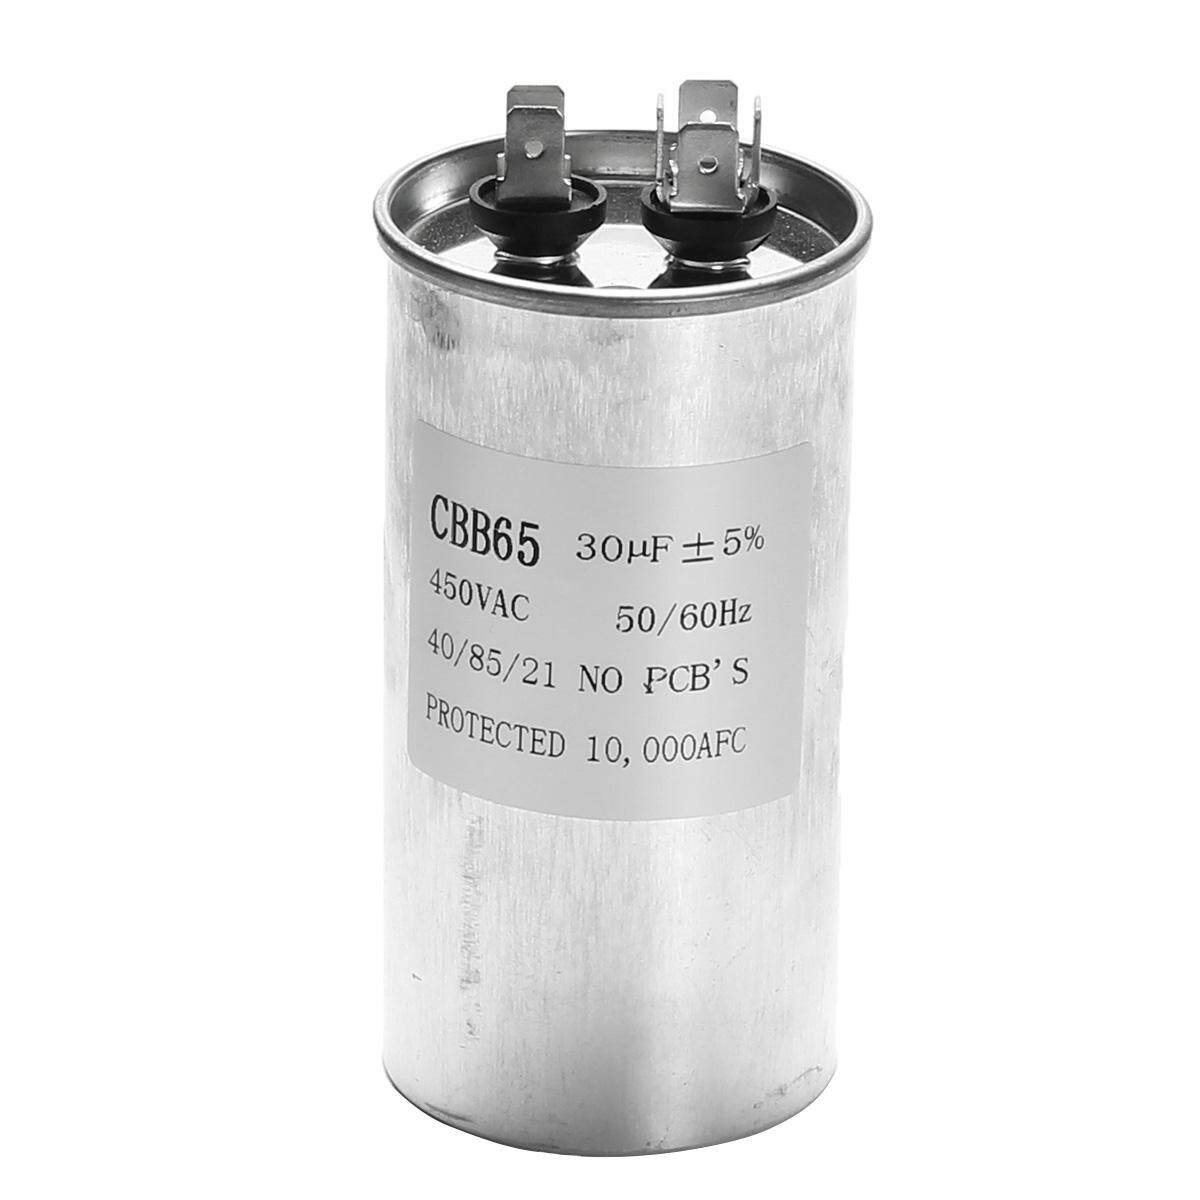 3 Pcs 30 UF CBB65 450 V AC 50/60Hz Motor Udara Conditioner Kompresor Start Capacitor-Intl